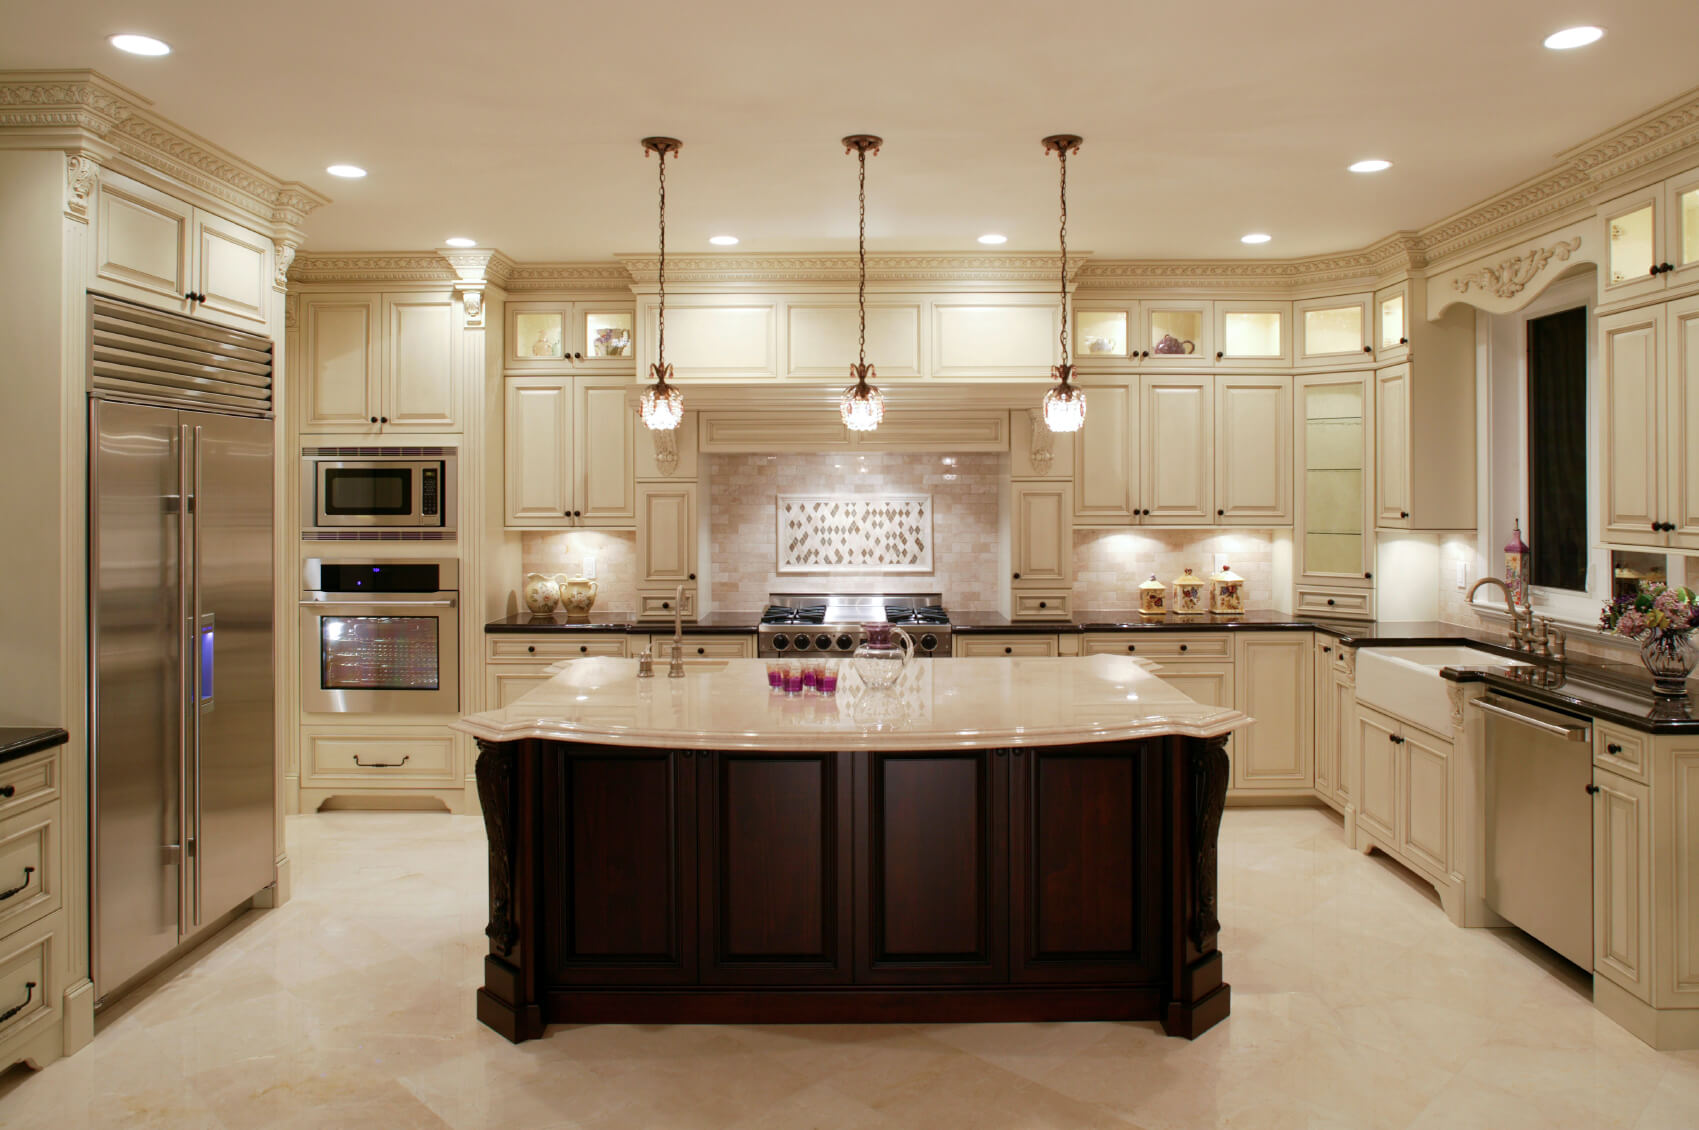 U Shaped Kitchen Layout With Island 41 Luxury Ushaped Kitchen Designs & Layouts Photos